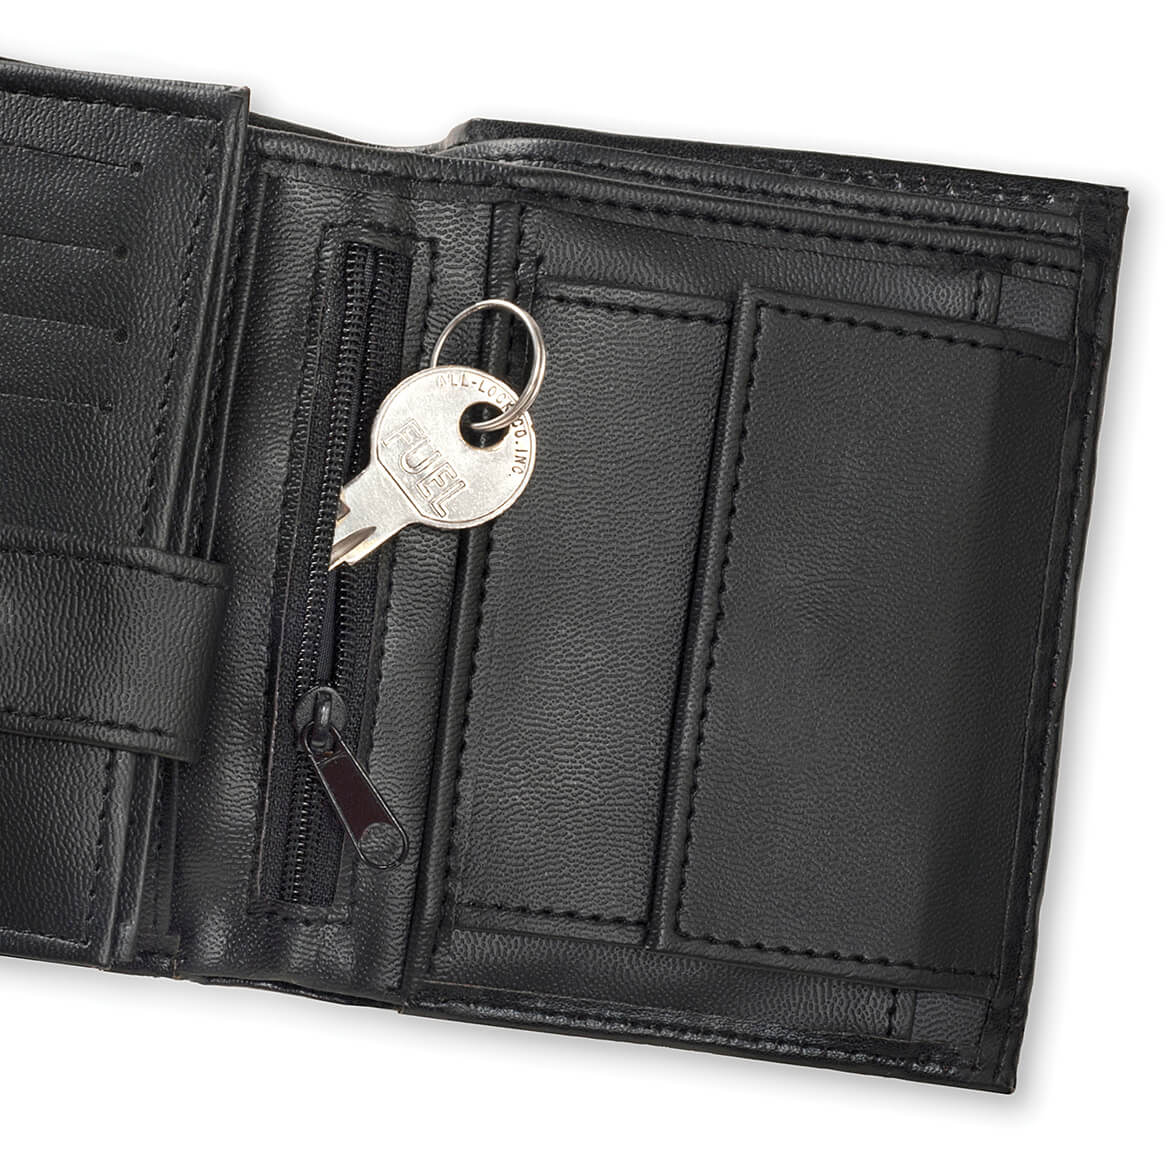 20 Pocket RFID Wallet-369792